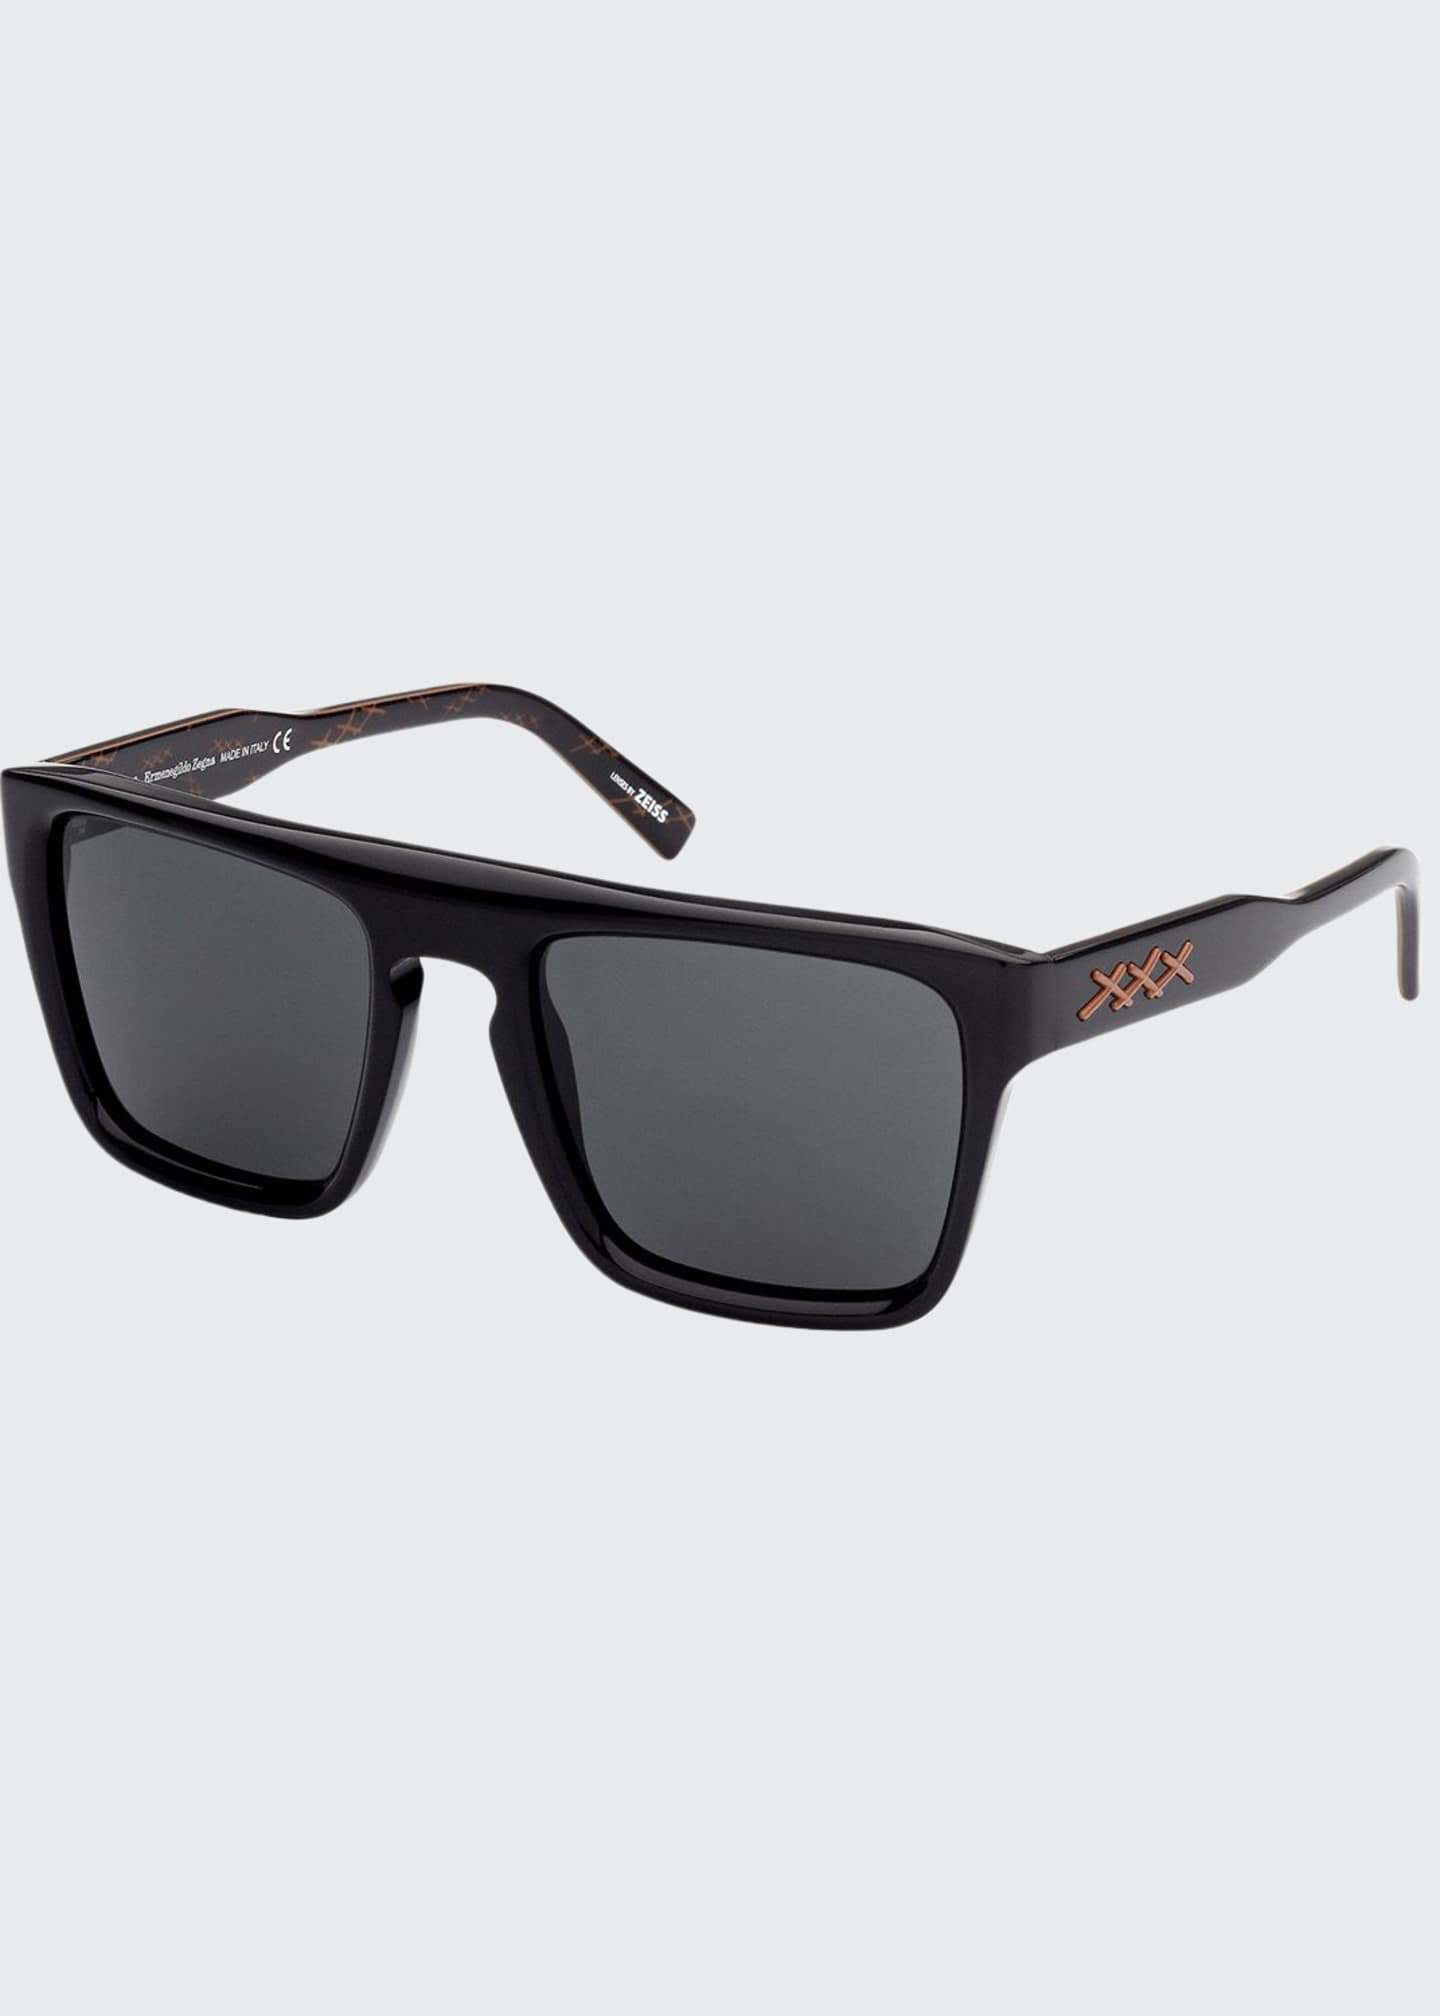 Image 1 of 1: Men's Square Acetate Sunglasses w/ Stitching